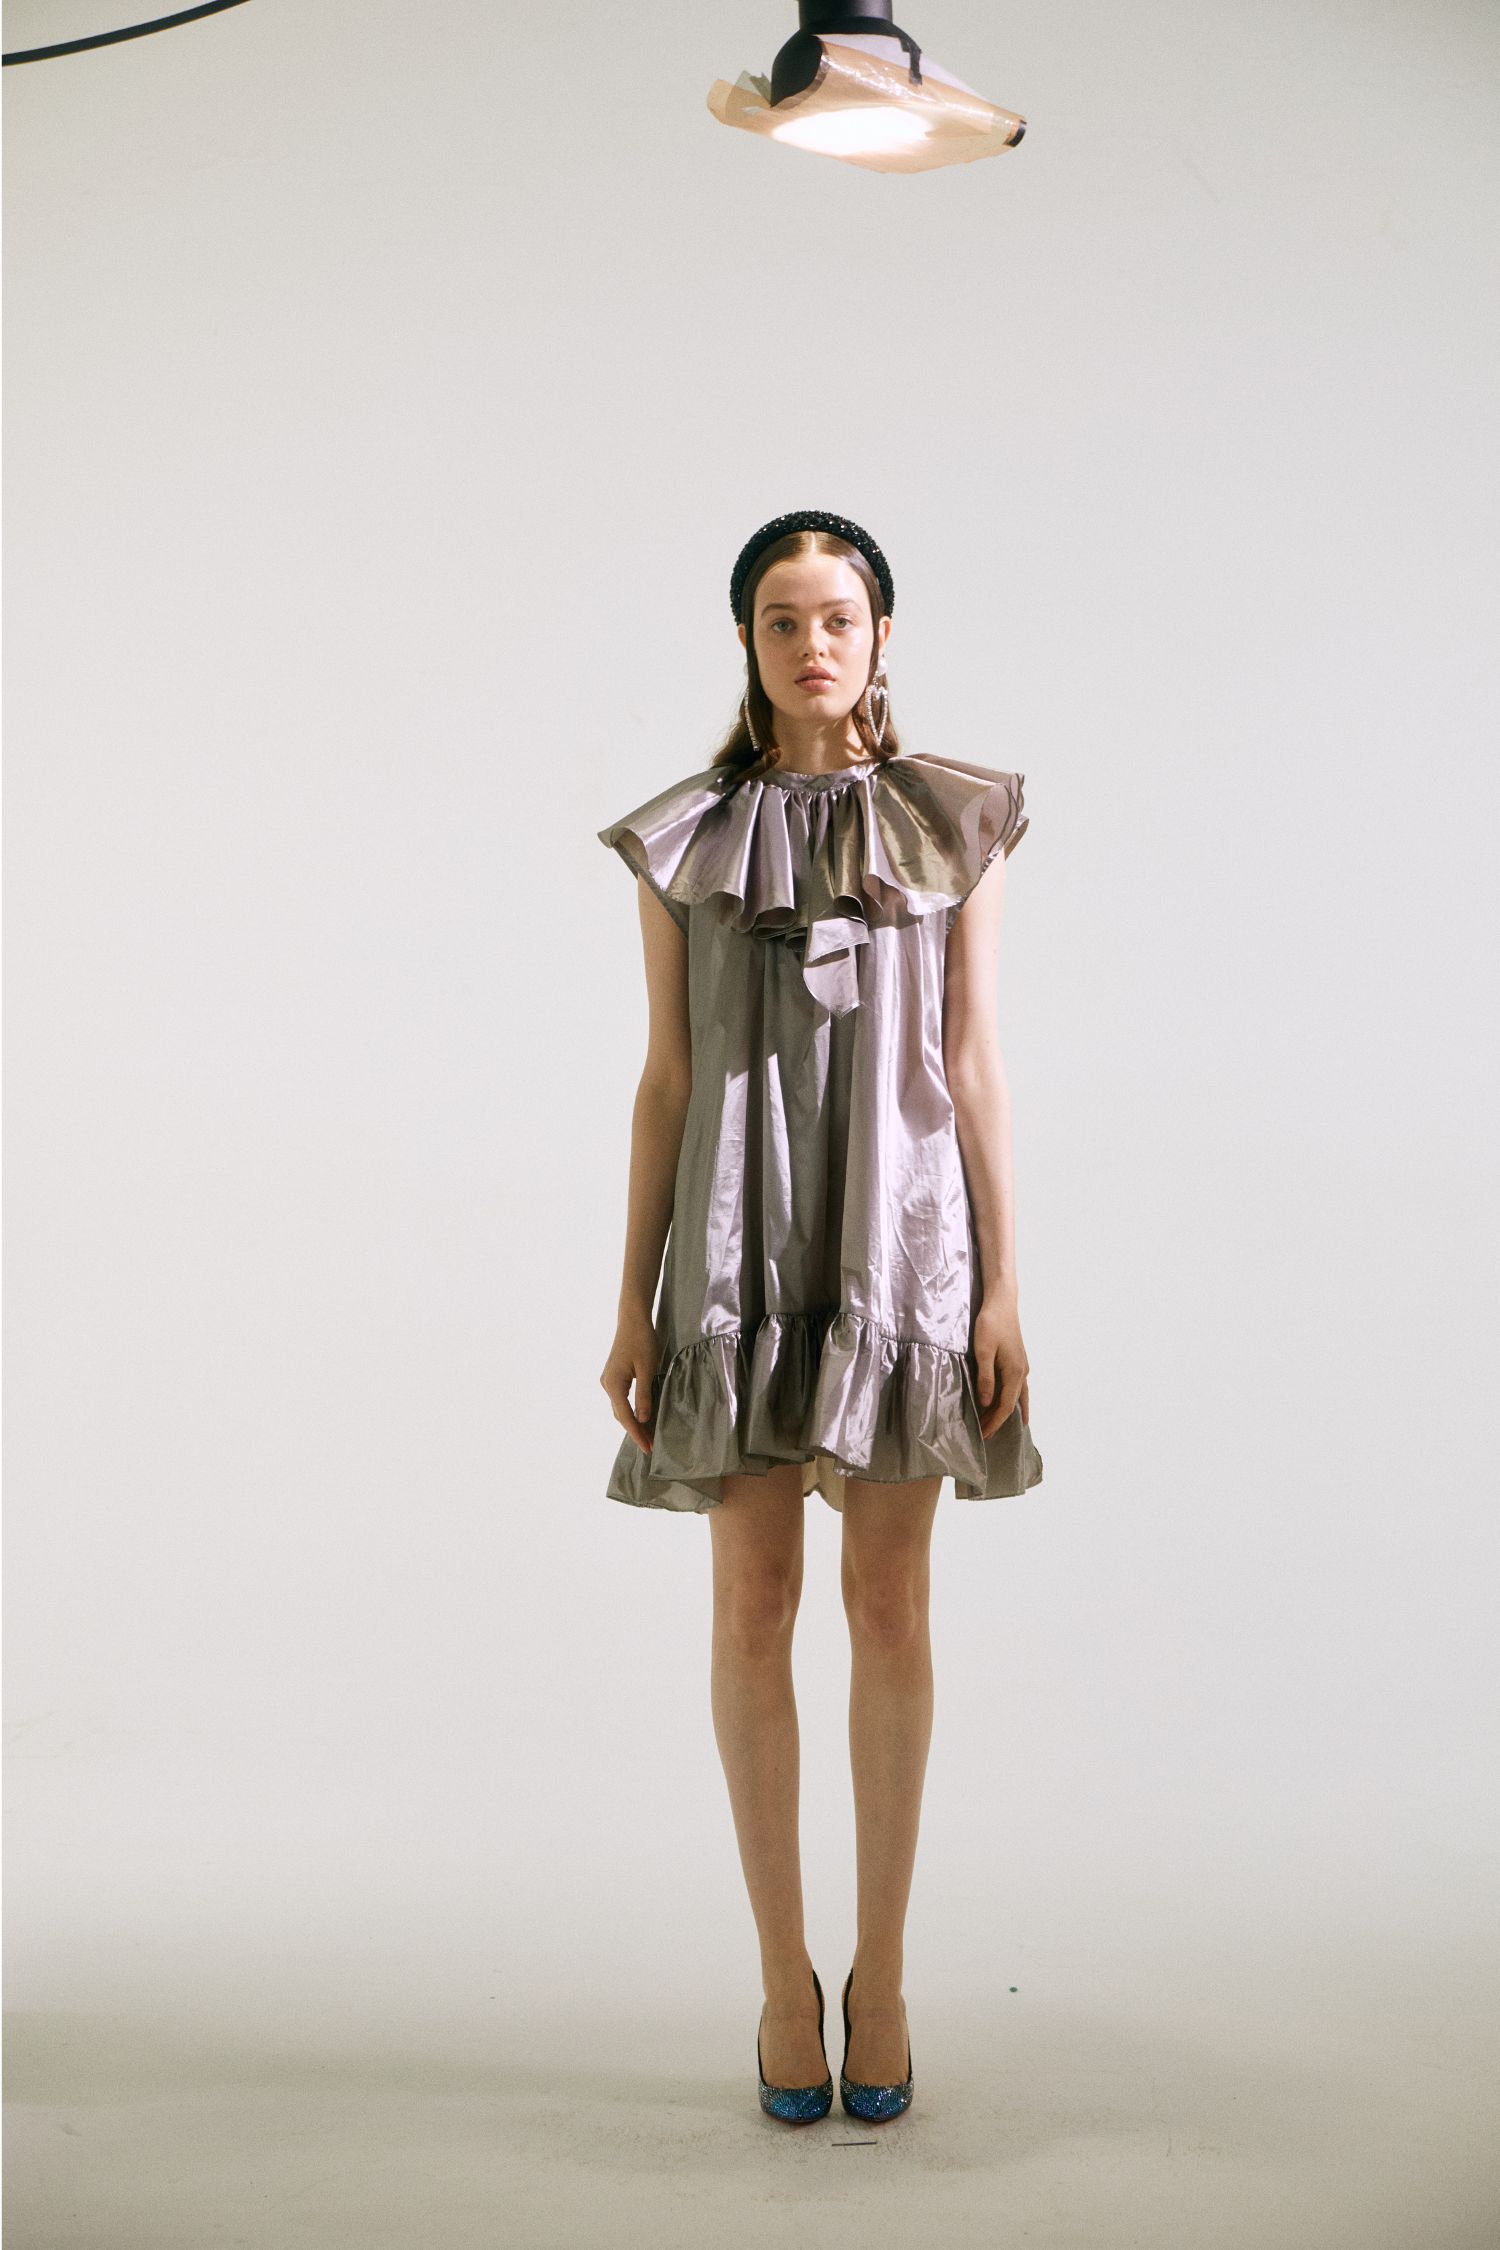 Jeni Dress by Rue Agthonis on curated-crowd.com